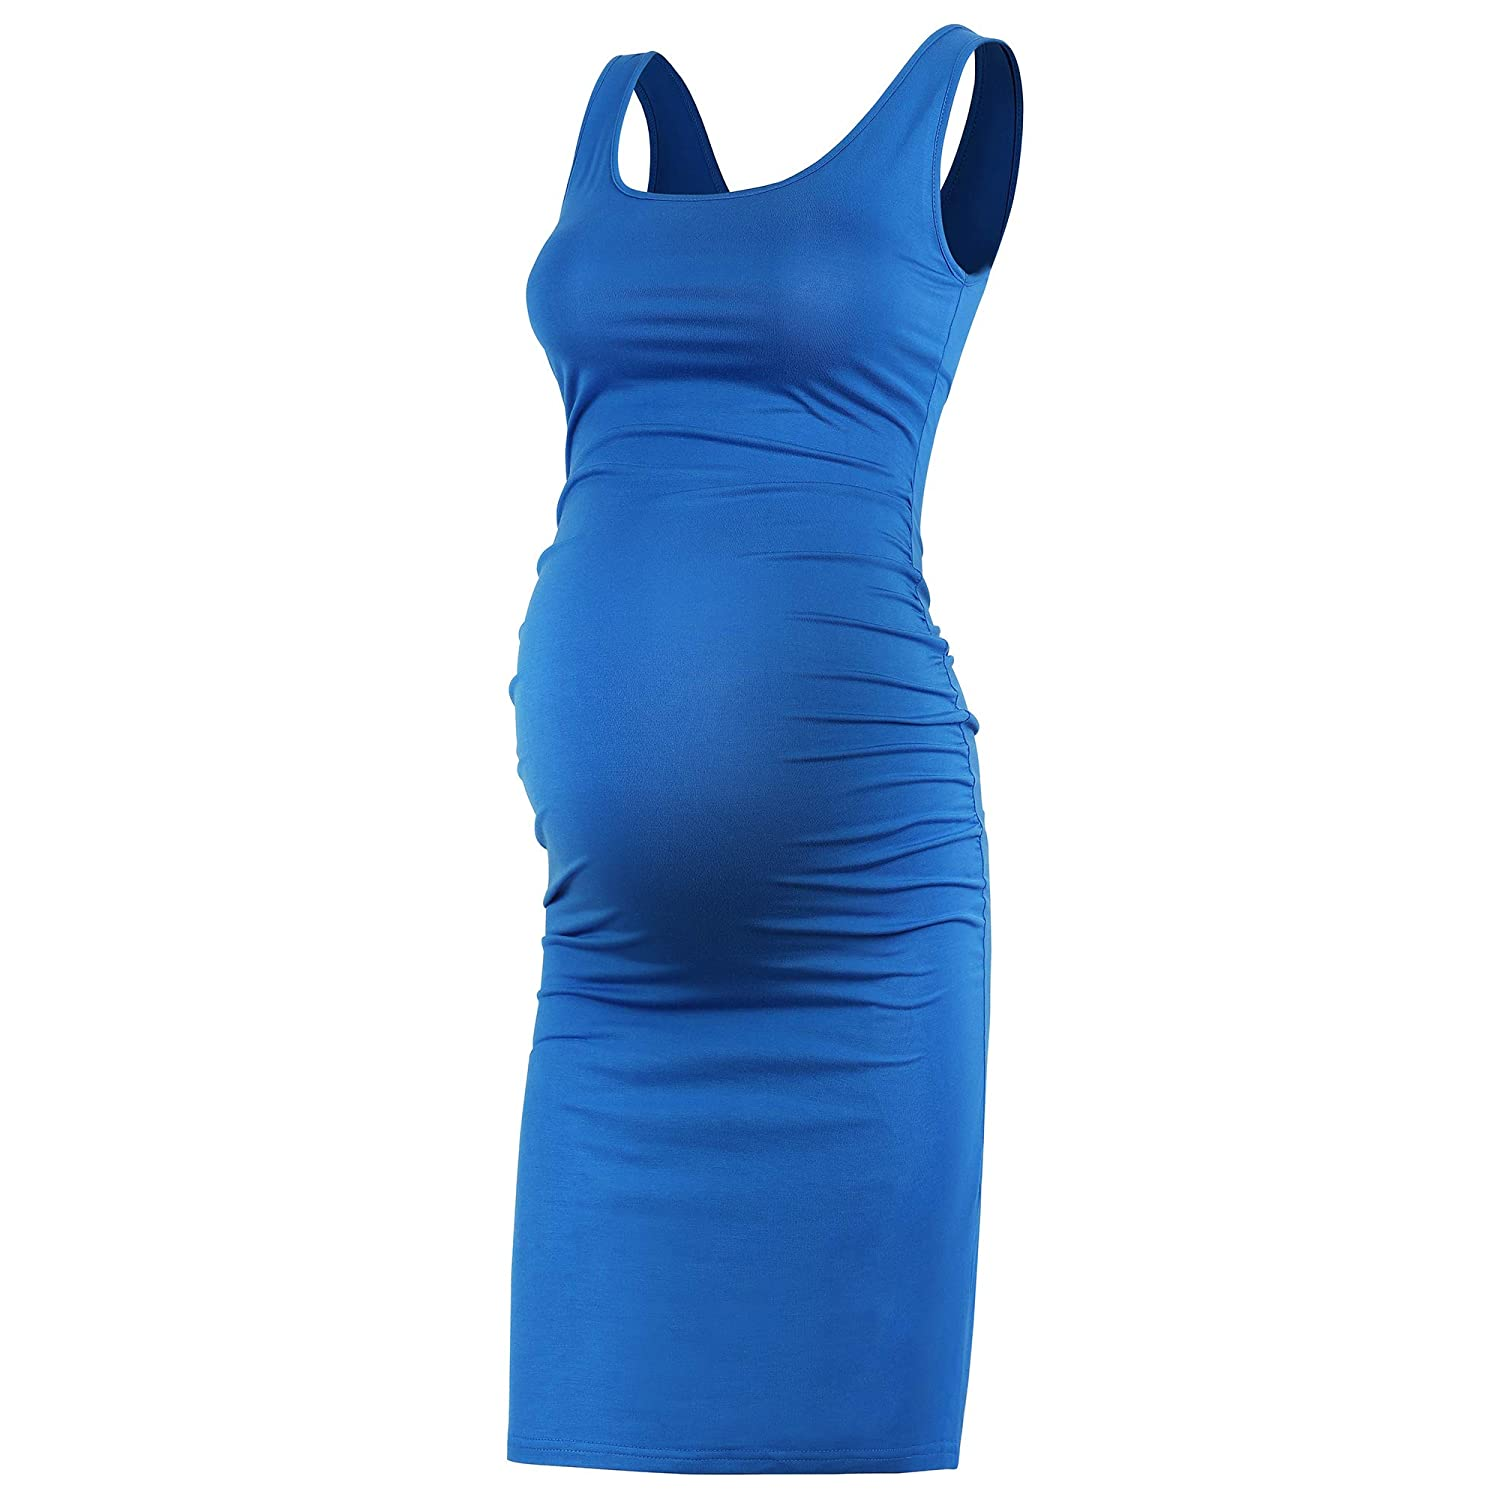 900b7ae4f9a Top 10 wholesale Casual Maternity Dresses - Chinabrands.com